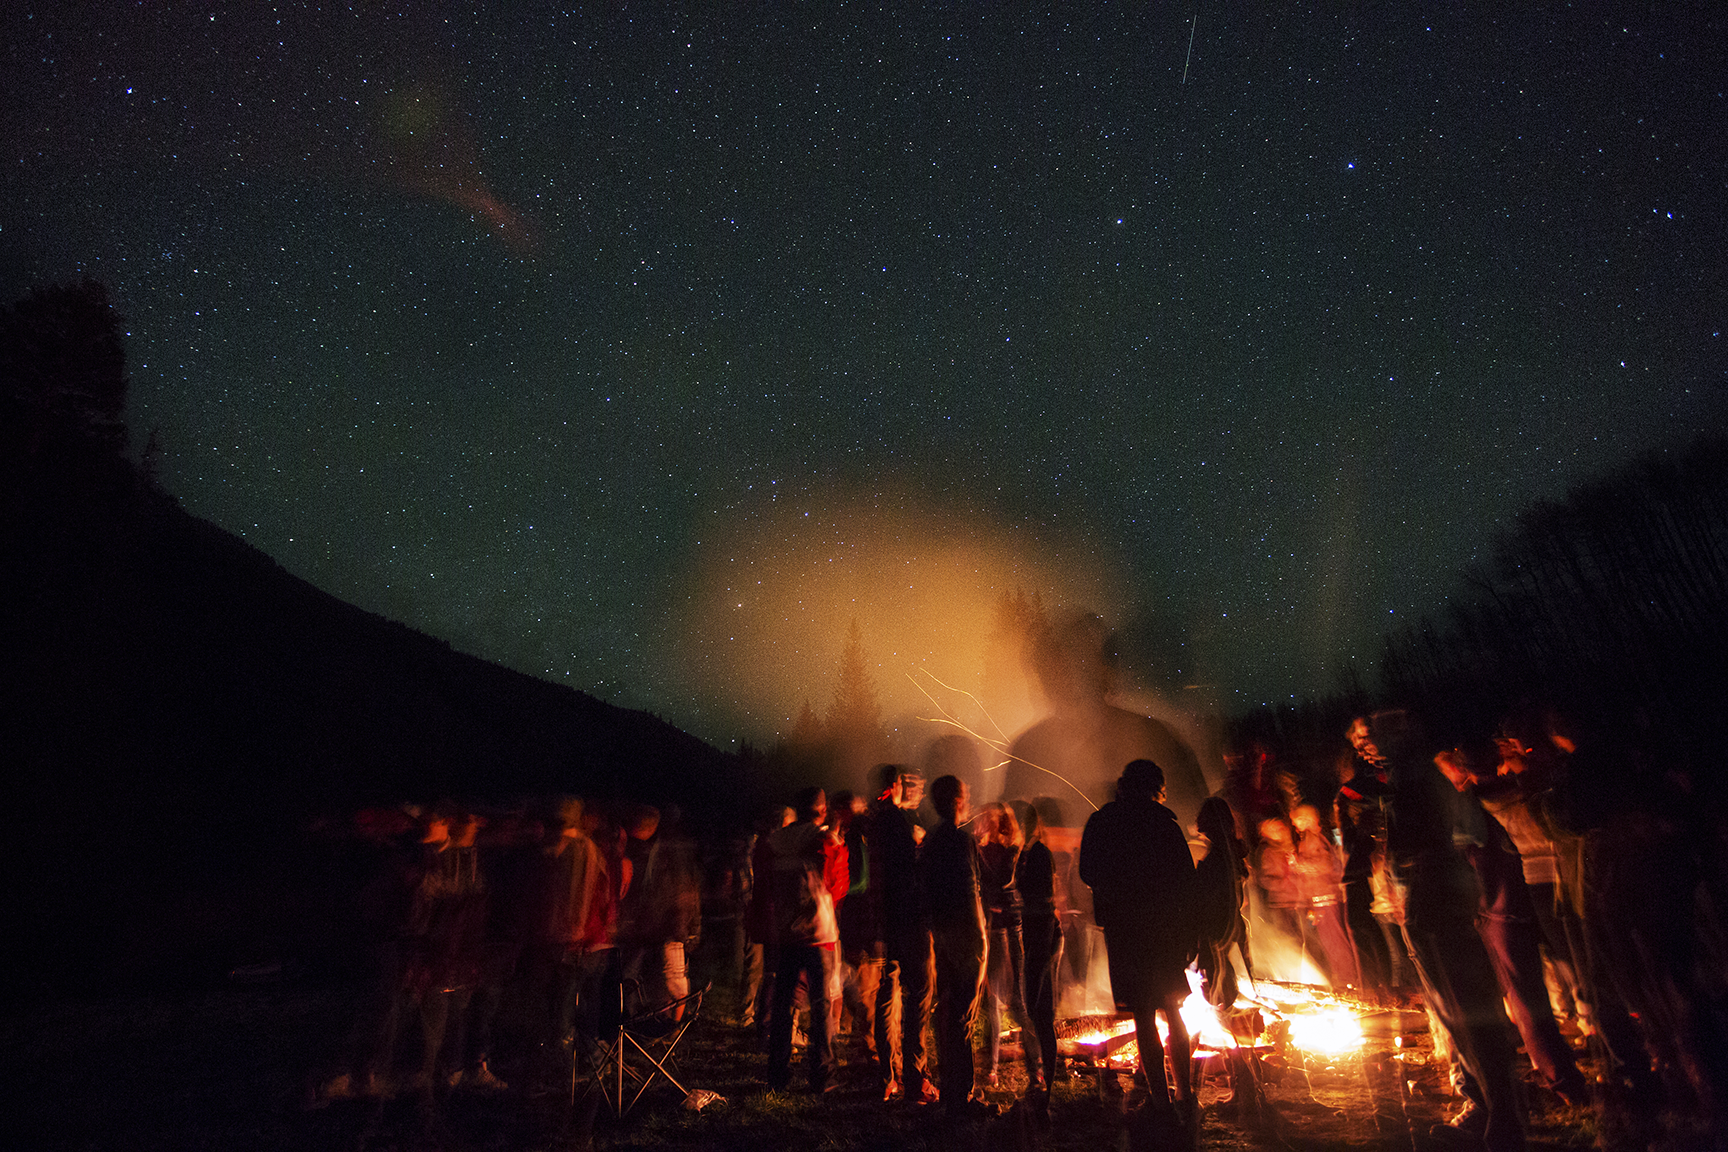 Fambul Tok's bonfire ceremonies provide a space to begin to address unhealed wounds of war